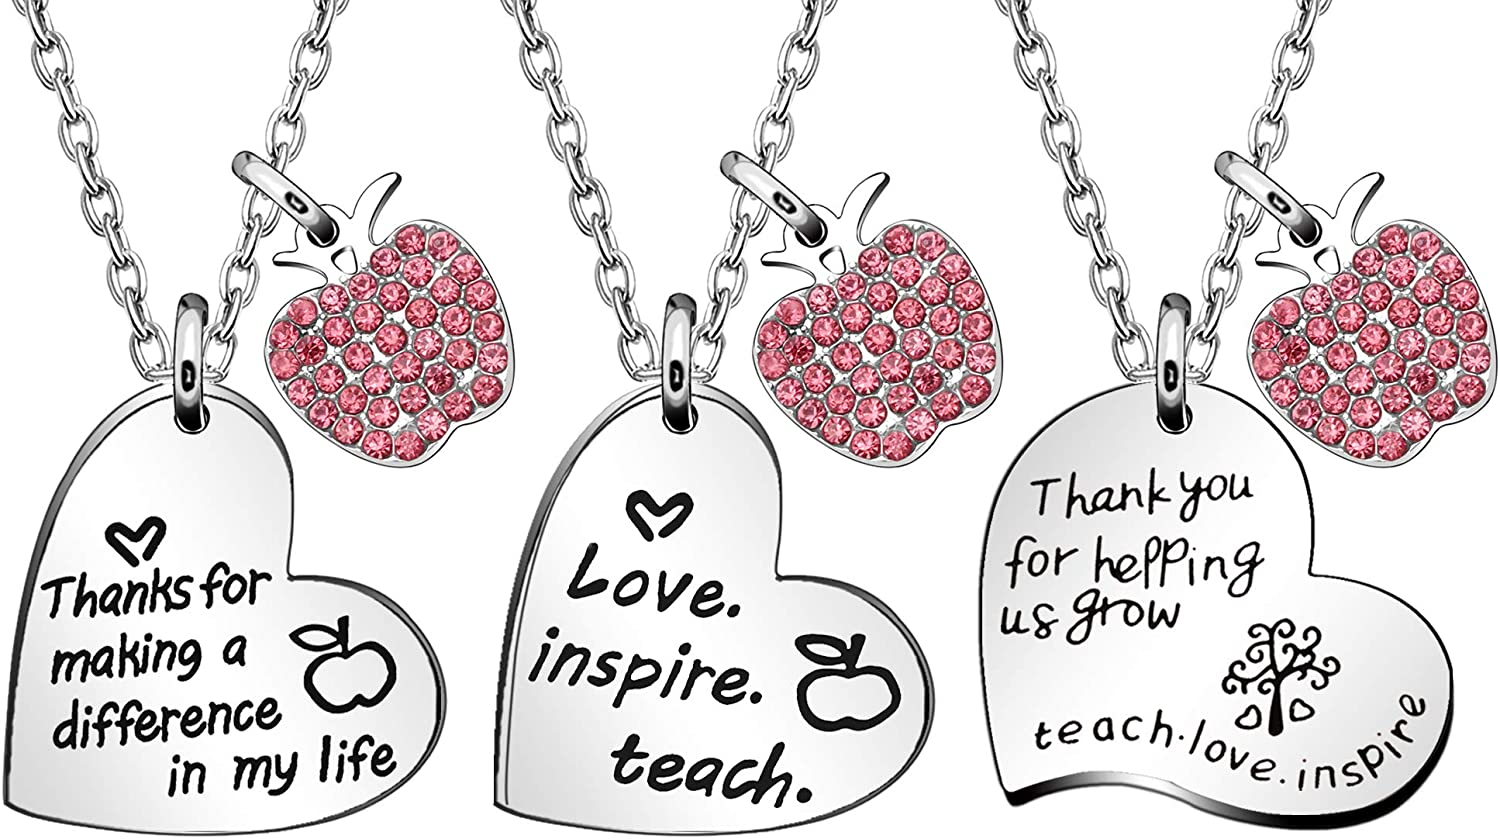 JQFEN 3 Pcs Heart Necklaces Set School Teacher Gifts Max 80% OFF Open Free Shipping New Gr for